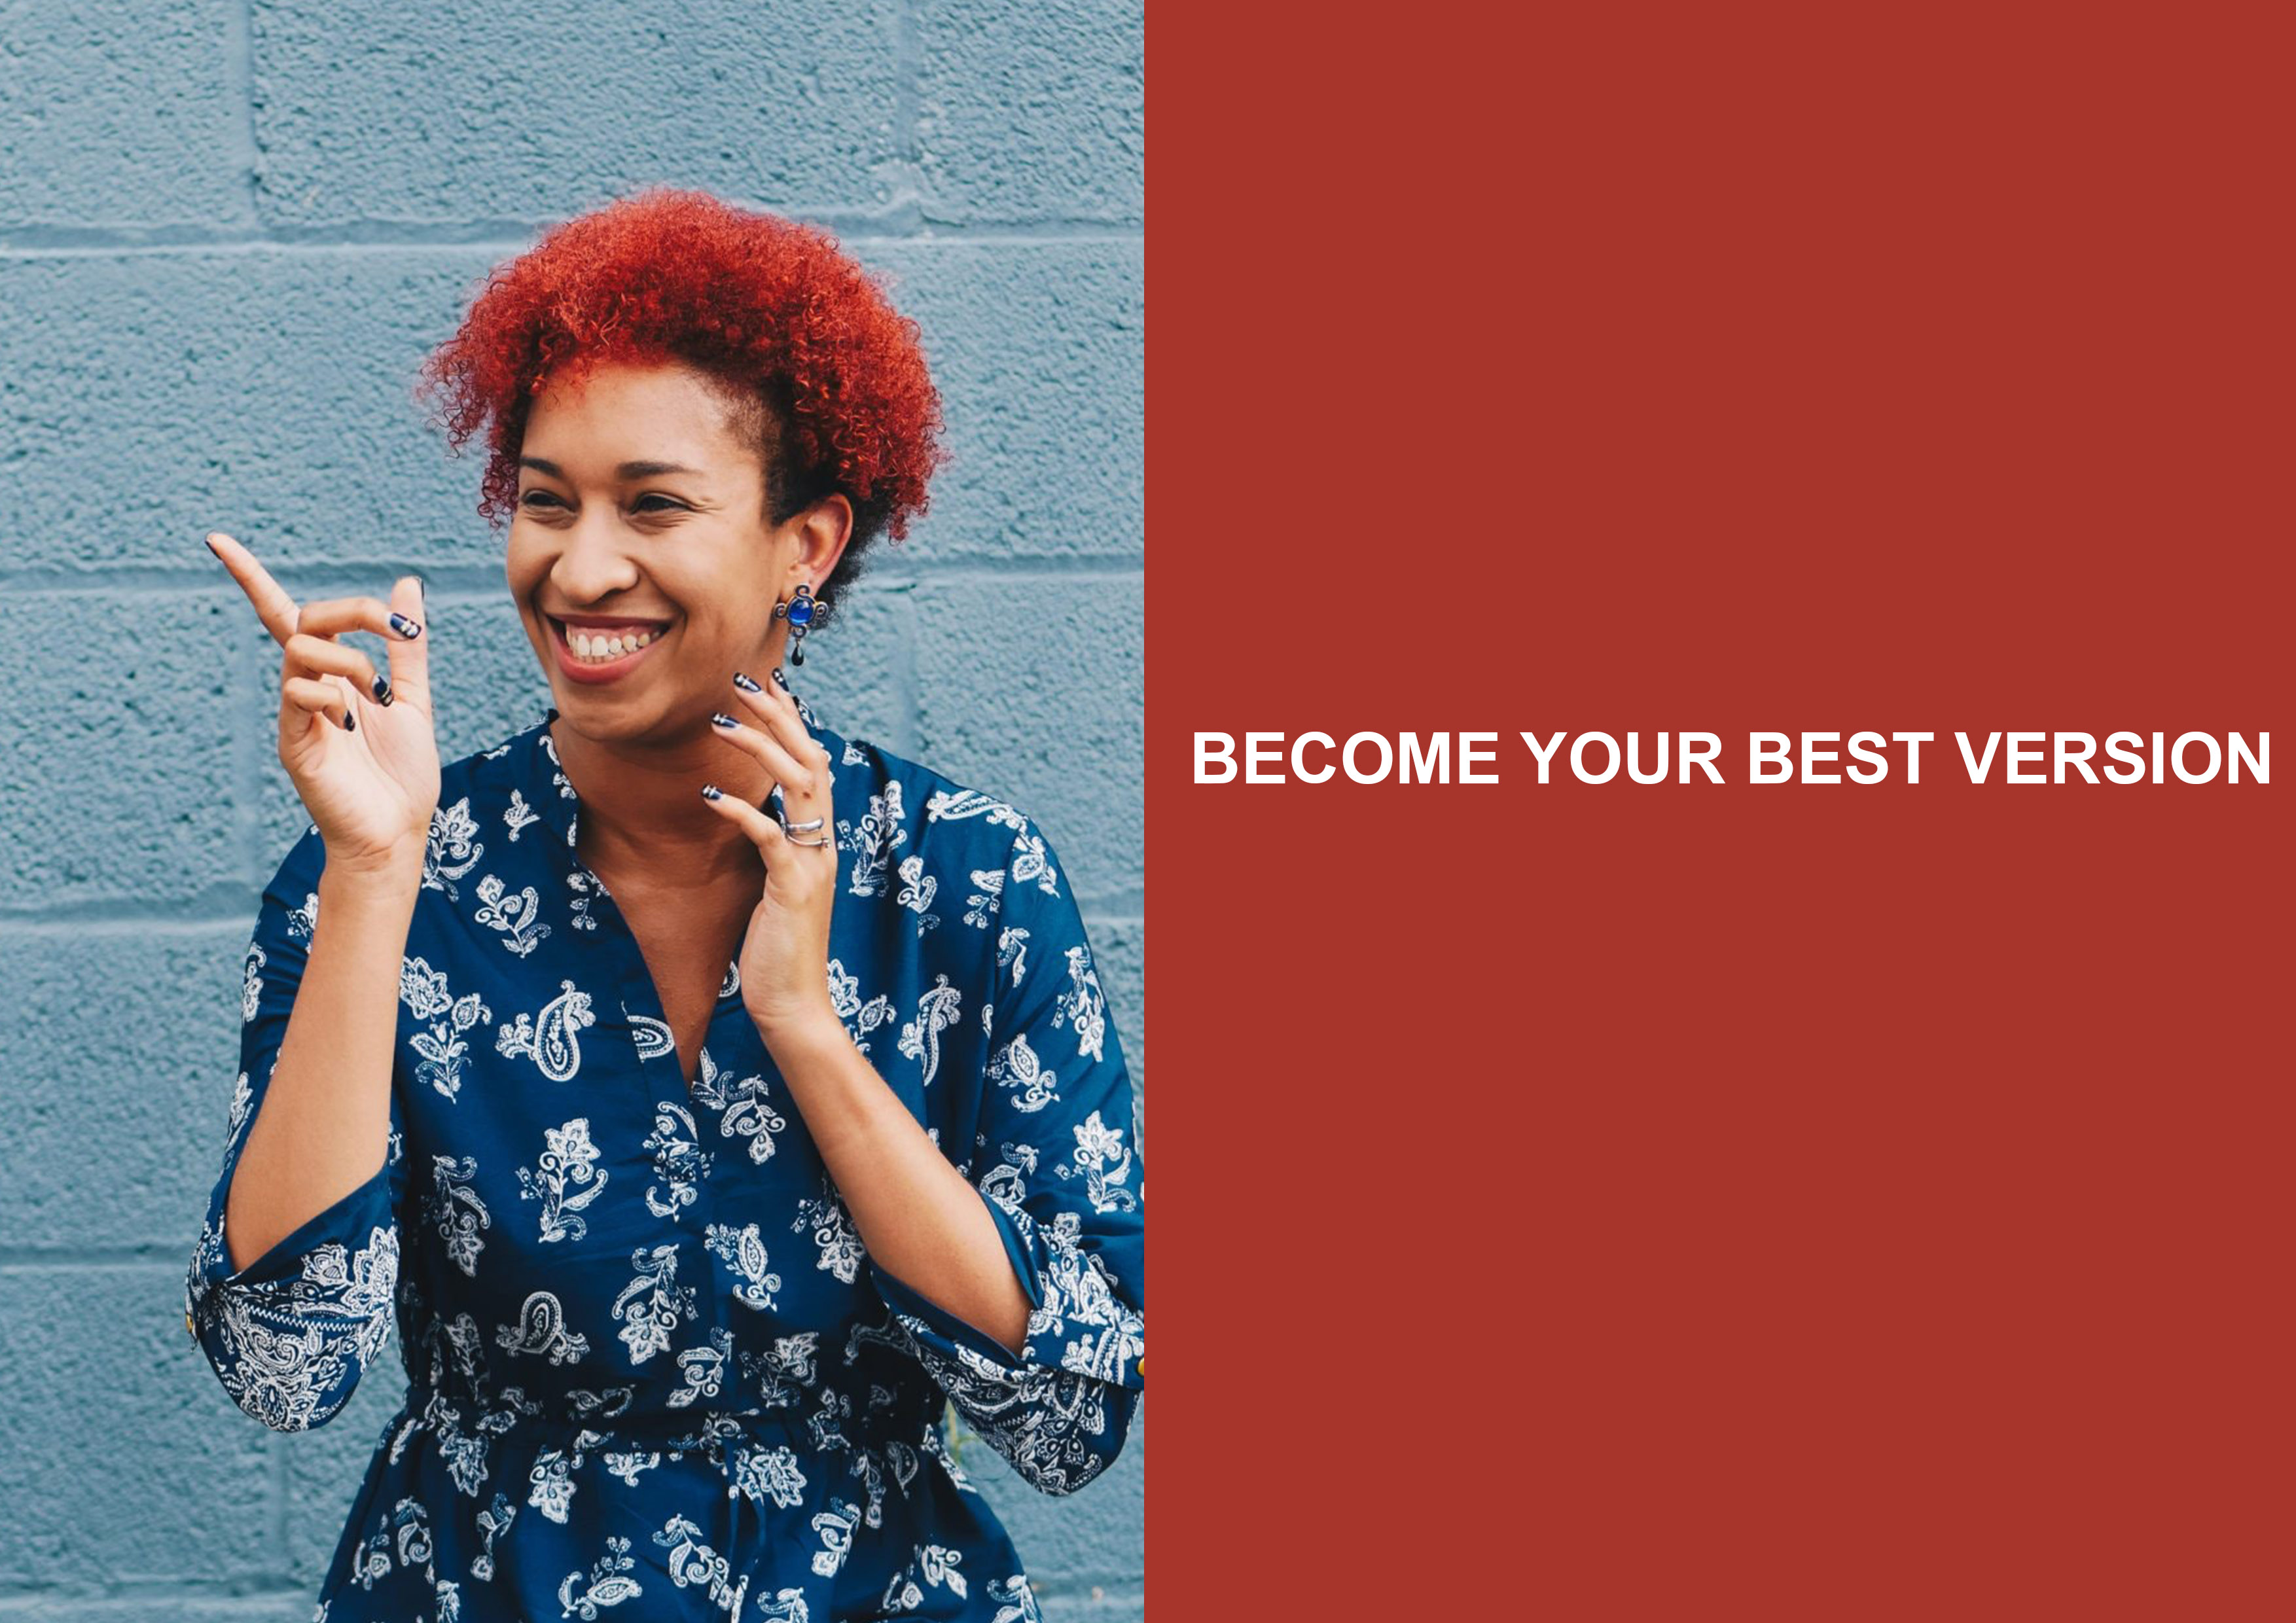 How To Become Your Best Version